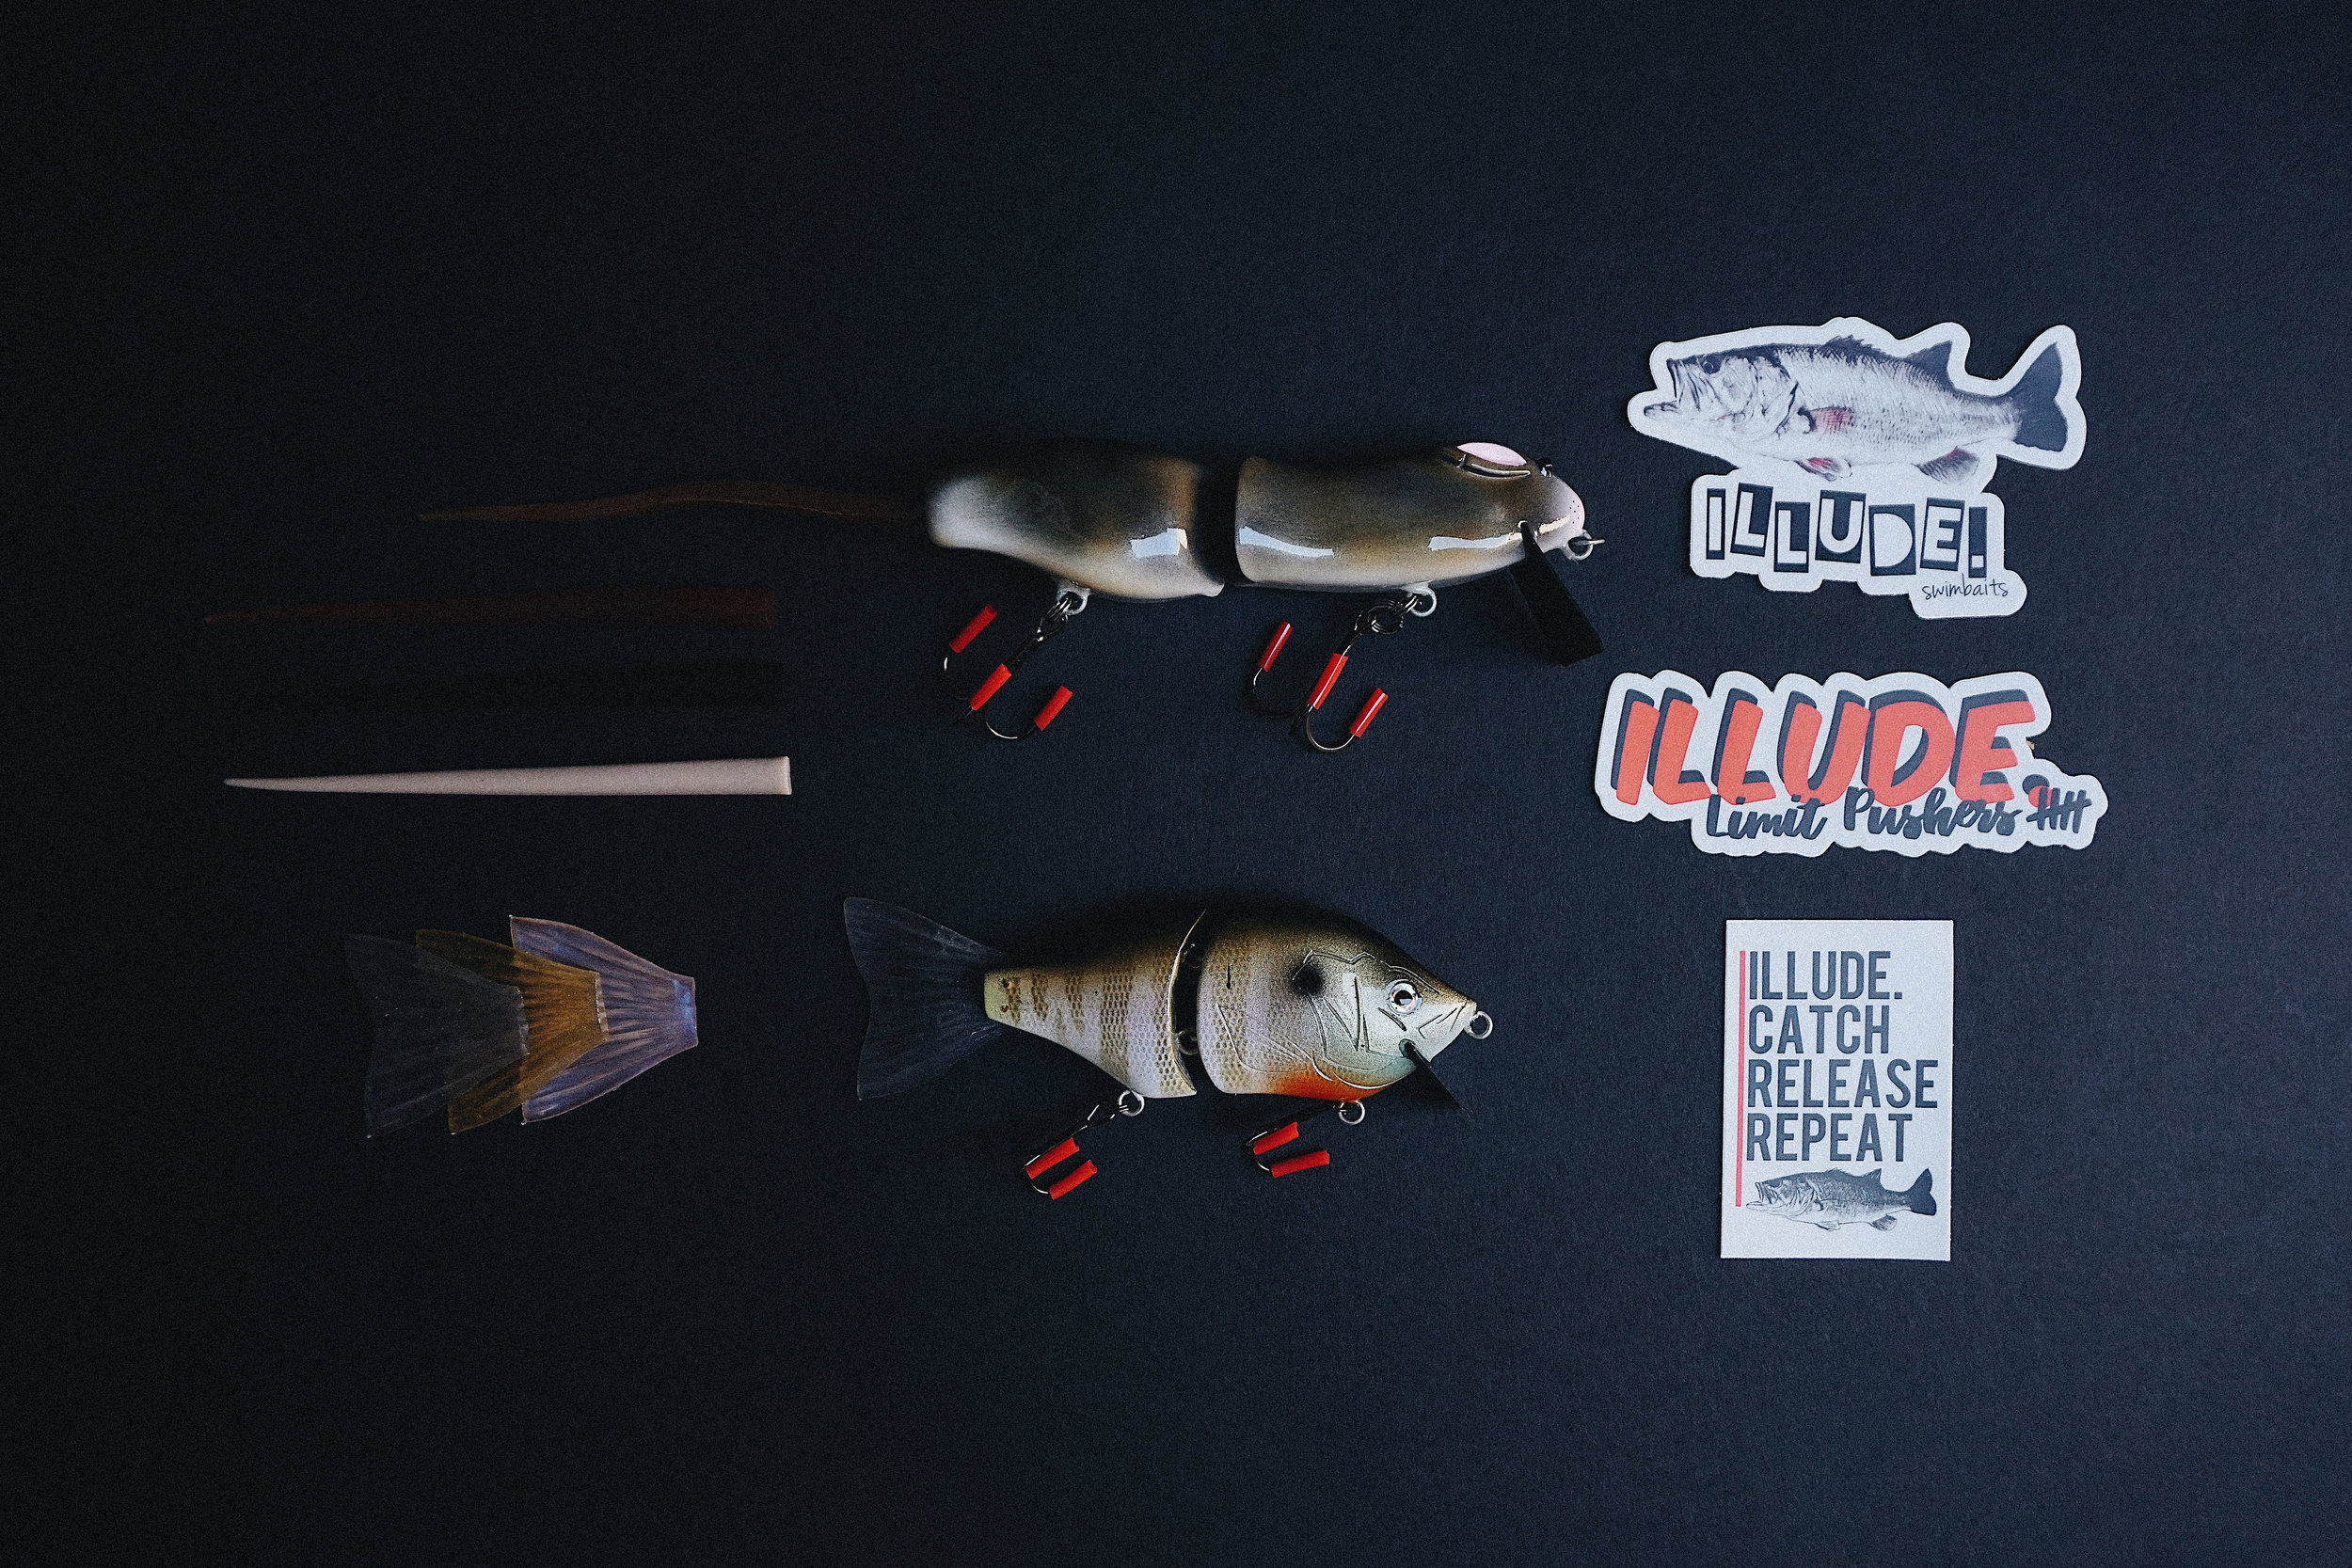 SBSRFC_Swimbait_Canada_Catch_To_Cast_Video_Contest_Illude_Swimbaits.jpg